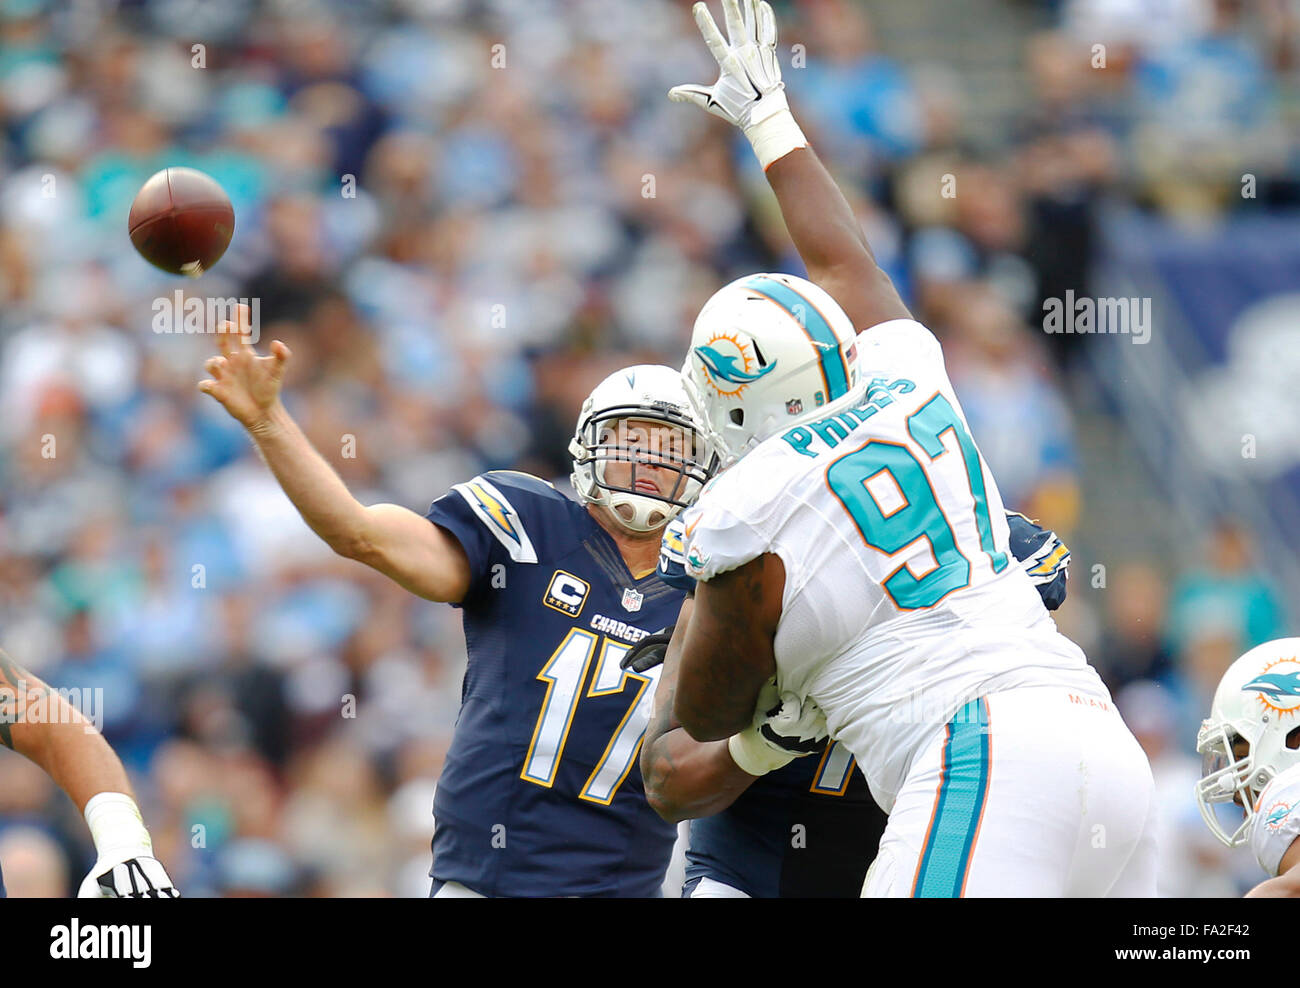 San Diego, CA, USA. 20th Dec, 2015. SAN DIEGO, CA -DEC. 20, 2015 - Chargers Philip Rivers airs it out to Dontrelle - Stock Image